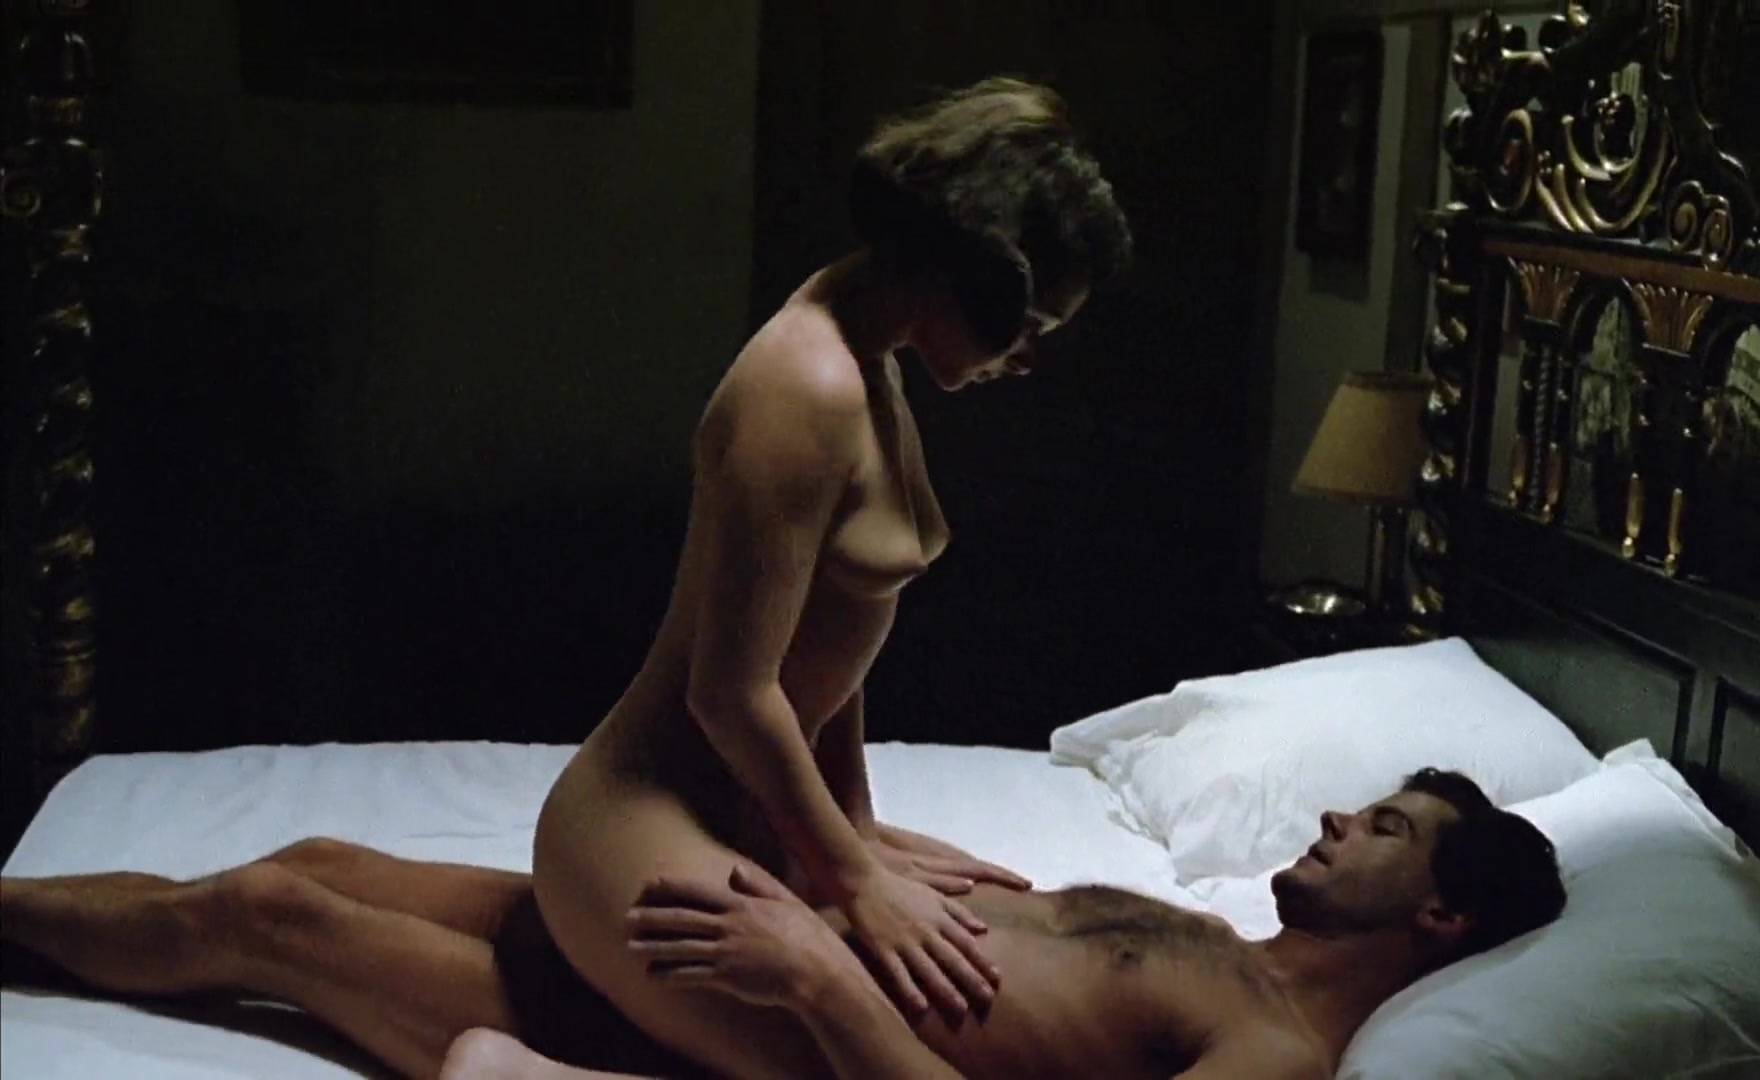 Kate Beckinsale Nude In Movies